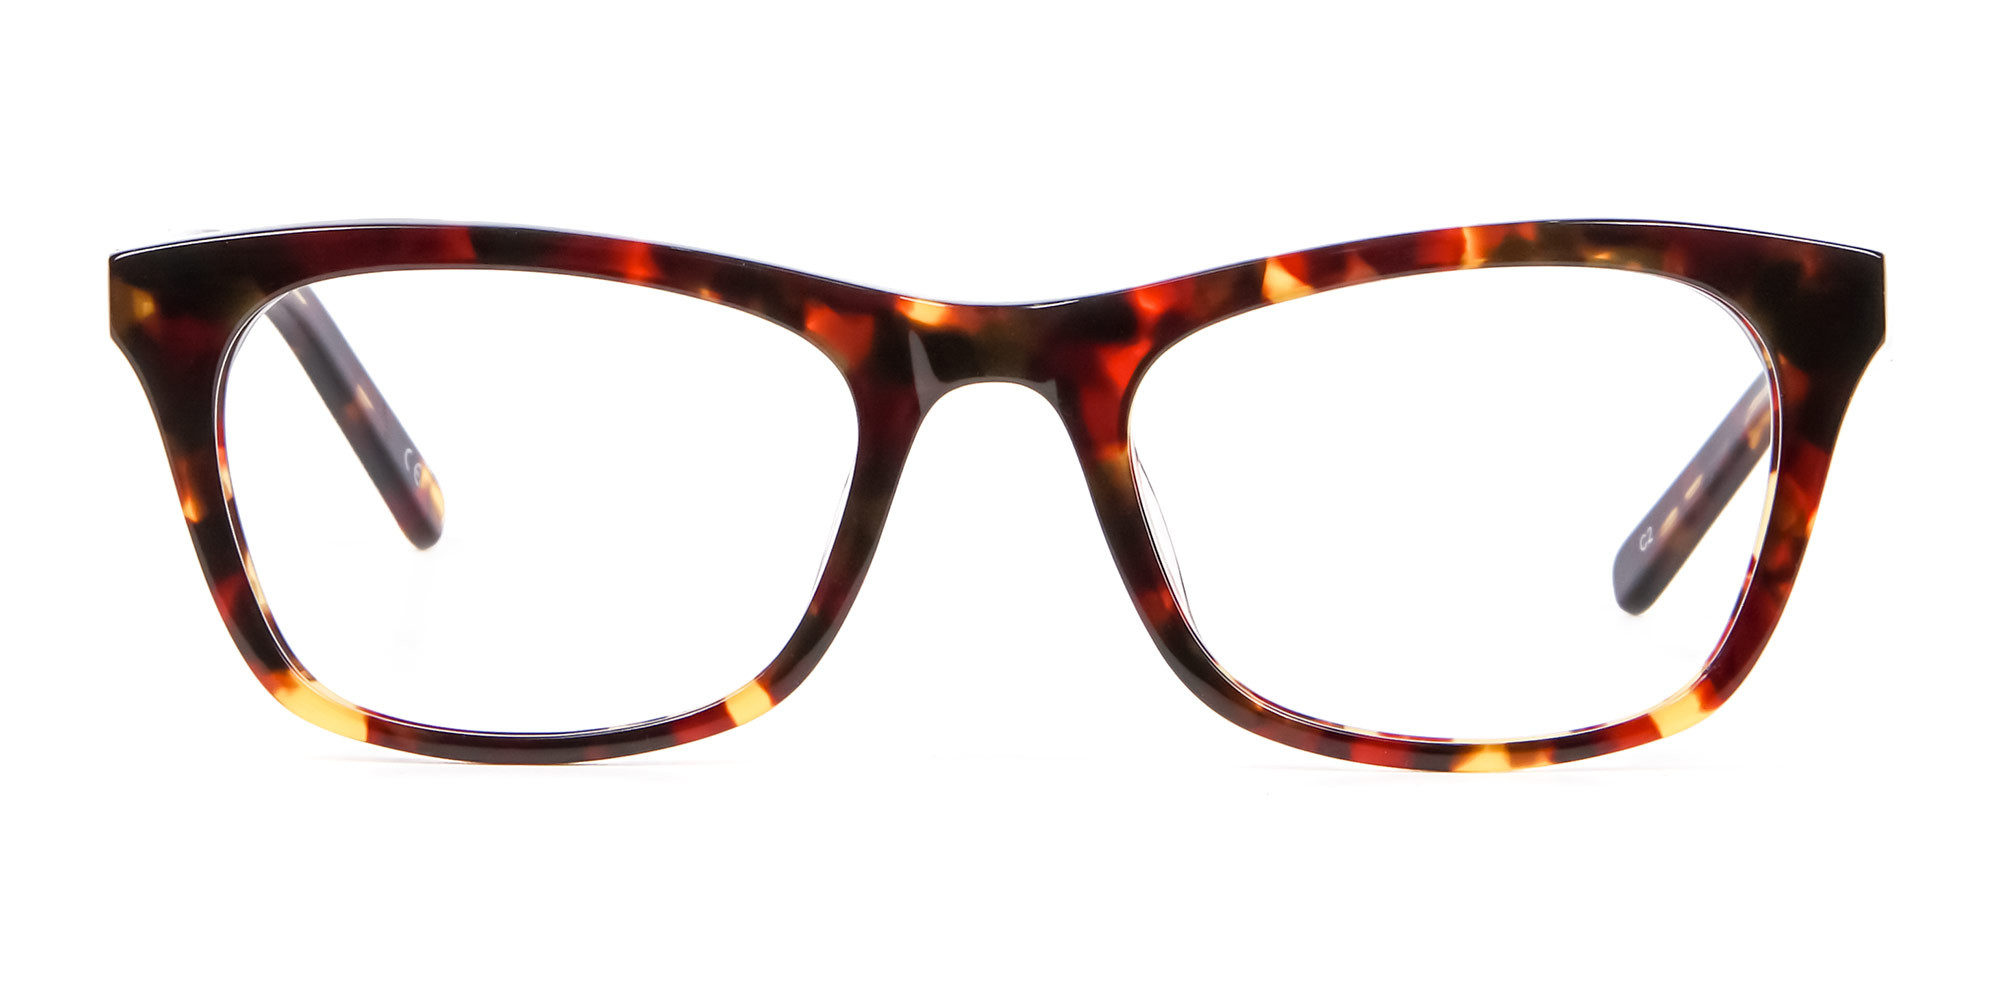 Warm-toned Tortoiseshell Glasses in Cat Eye Style